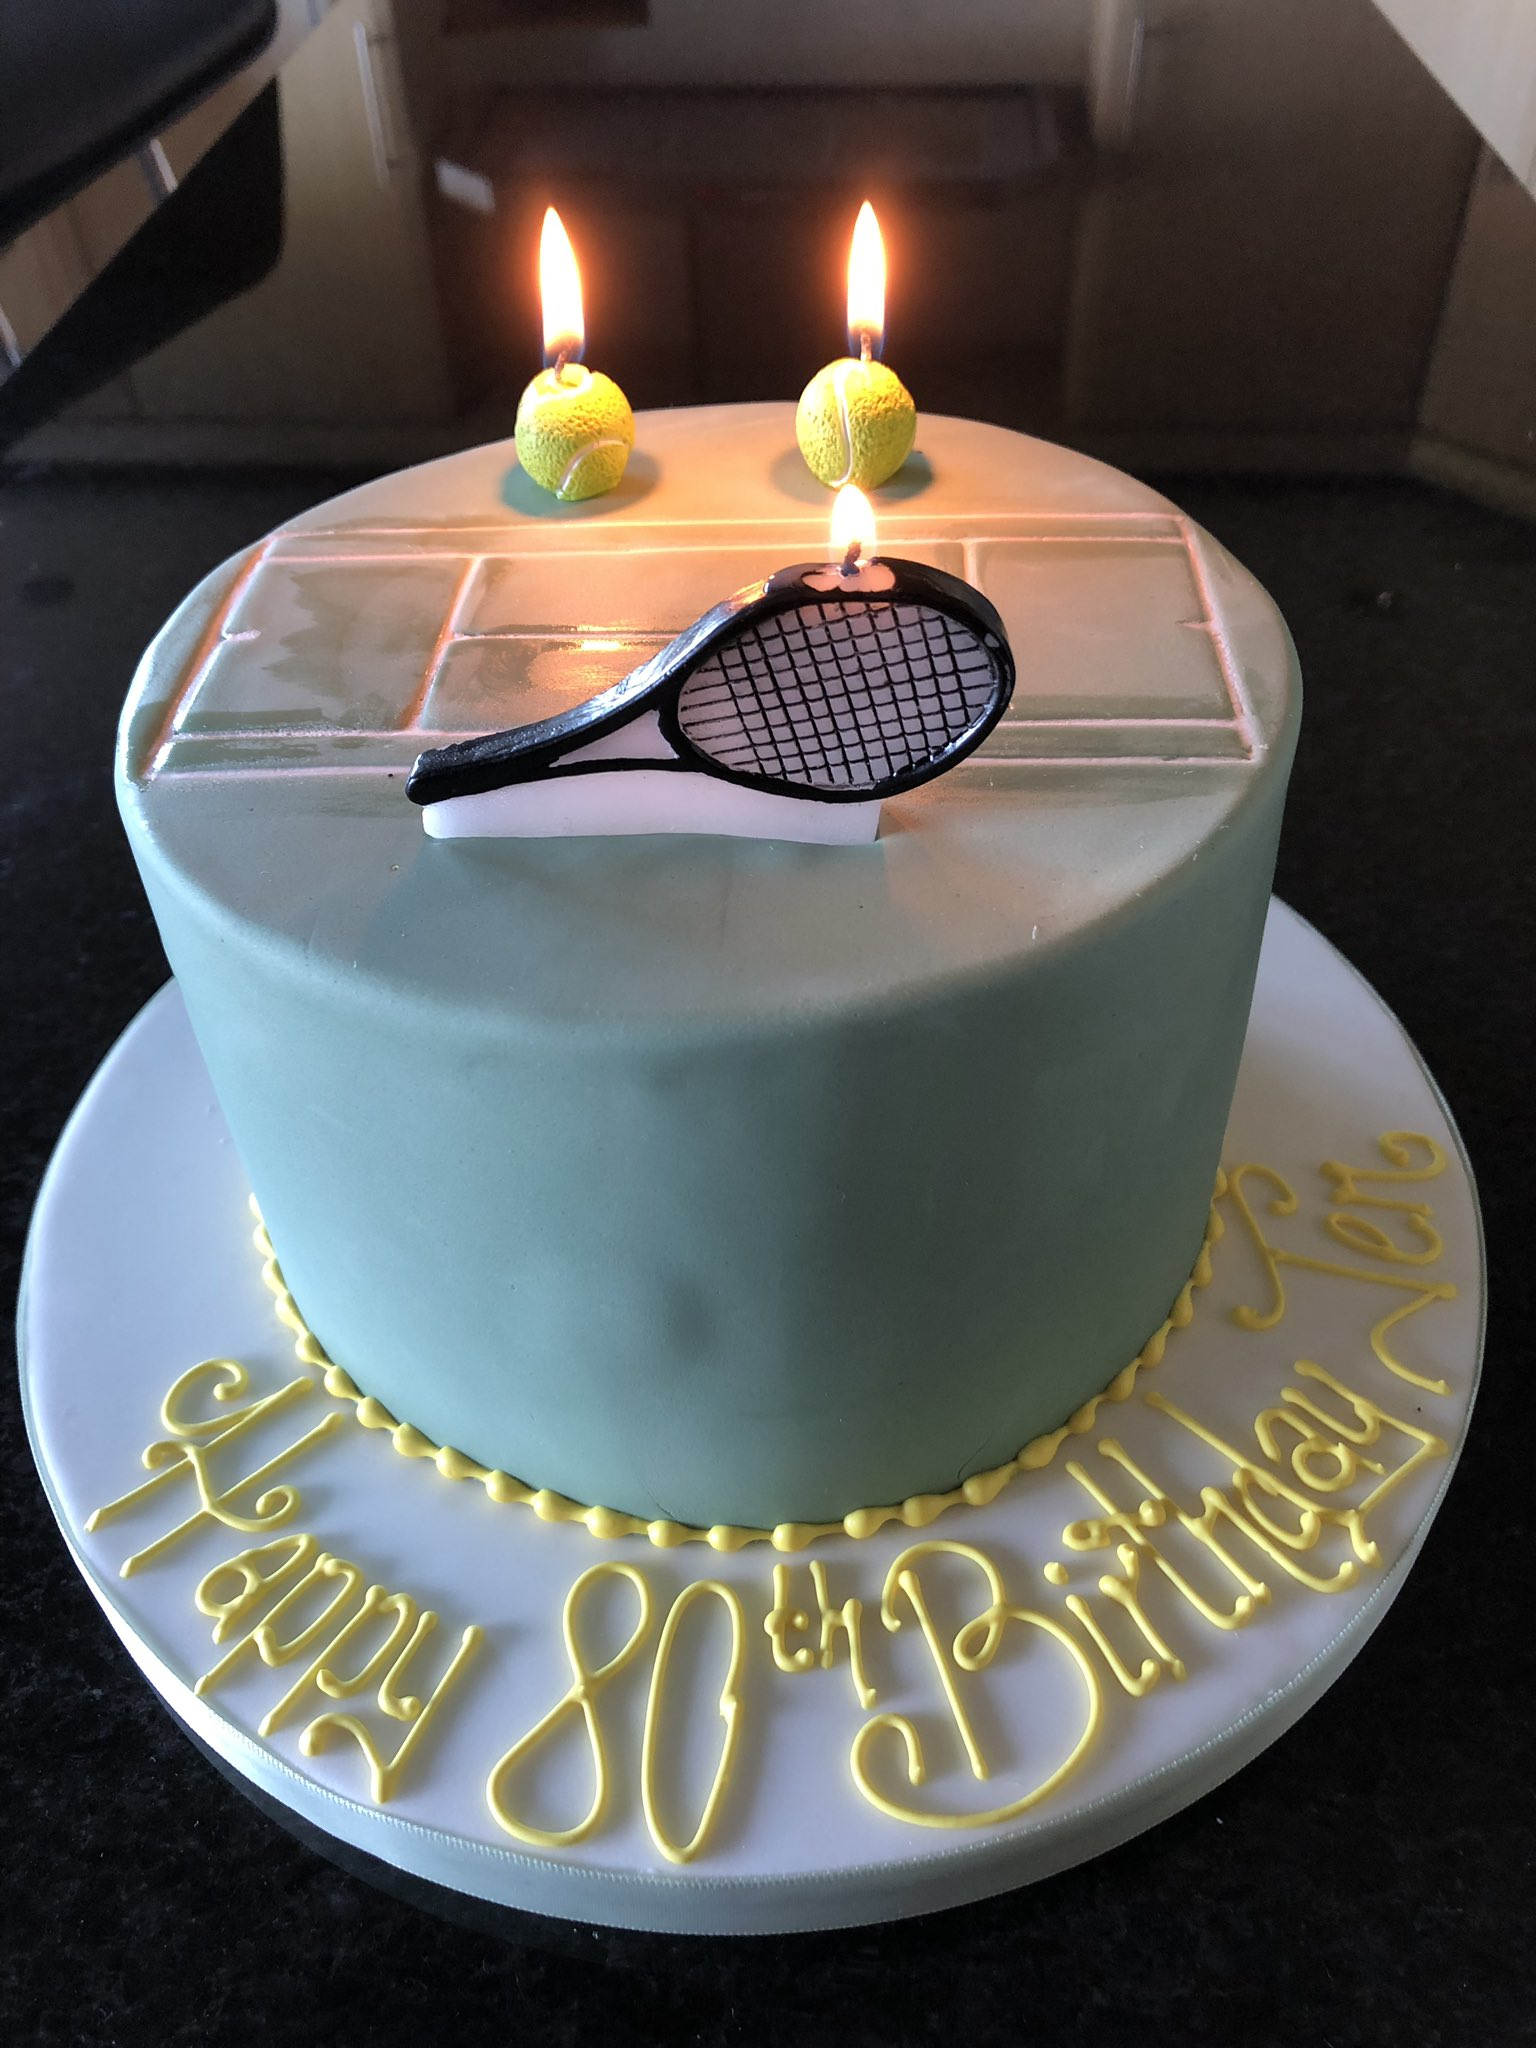 happy 80th birthday mum, to a huge tennis fan and follower of enjoy your cake!